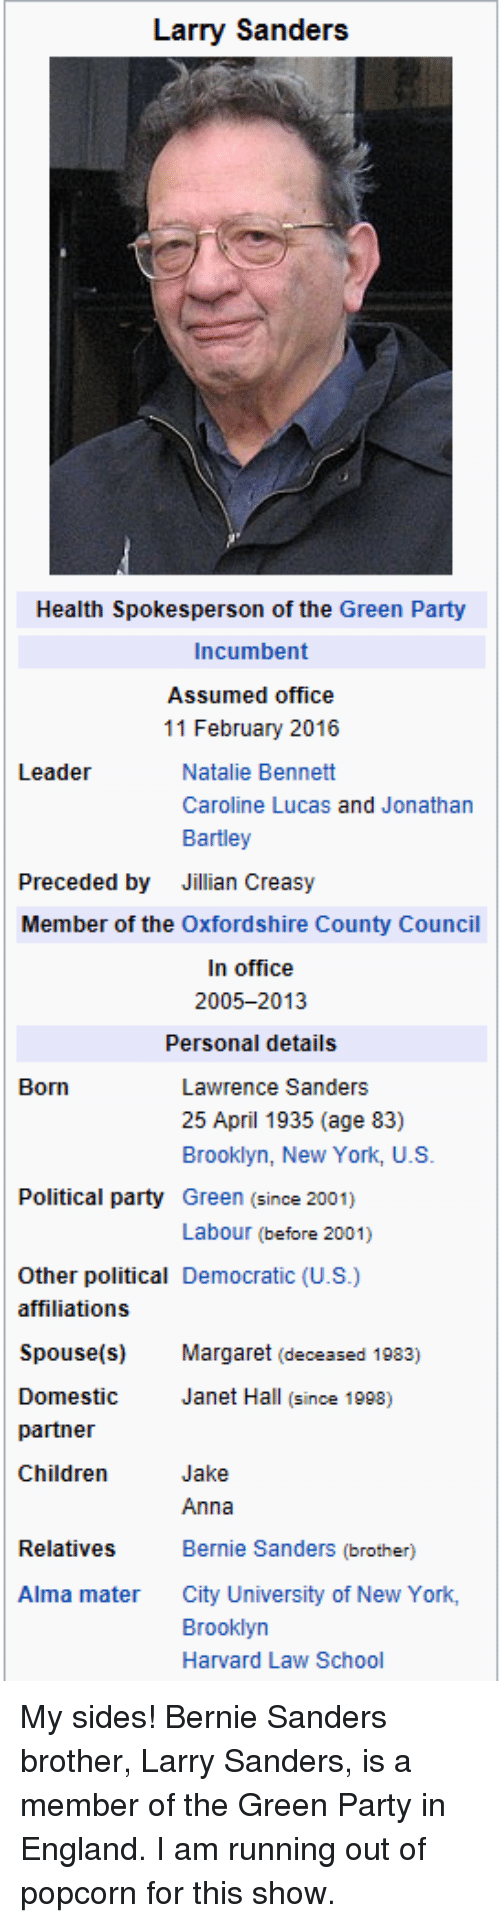 Anna, Bernie Sanders, and Children: Larry Sanders  Health Spokesperson of the Green Party  Incumbent  Assumed office  11 February 2016  Natalie Bennett  Leader  Caroline Lucas and Jonathan  Bartley  Preceded by  Jillian Creasy  Member of the Oxfordshire County Council  In office  2005-2013  Personal details  Born  Lawrence Sanders  25 April 1935 (age 83)  Brooklyn, New York, U.S  Political party Green (since 2001)  Labour (before 2001)  Other political Democratic (U.S.)  affiliations  Spouse(s) Margaret (deceased 1983)  Domestic  partner  Children  Janet Hall (since 1998)  Jake  Anna  Bernie Sanders (brother)  City University of New York,  Brooklyn  Harvard Law School  Relatives  Alma mater